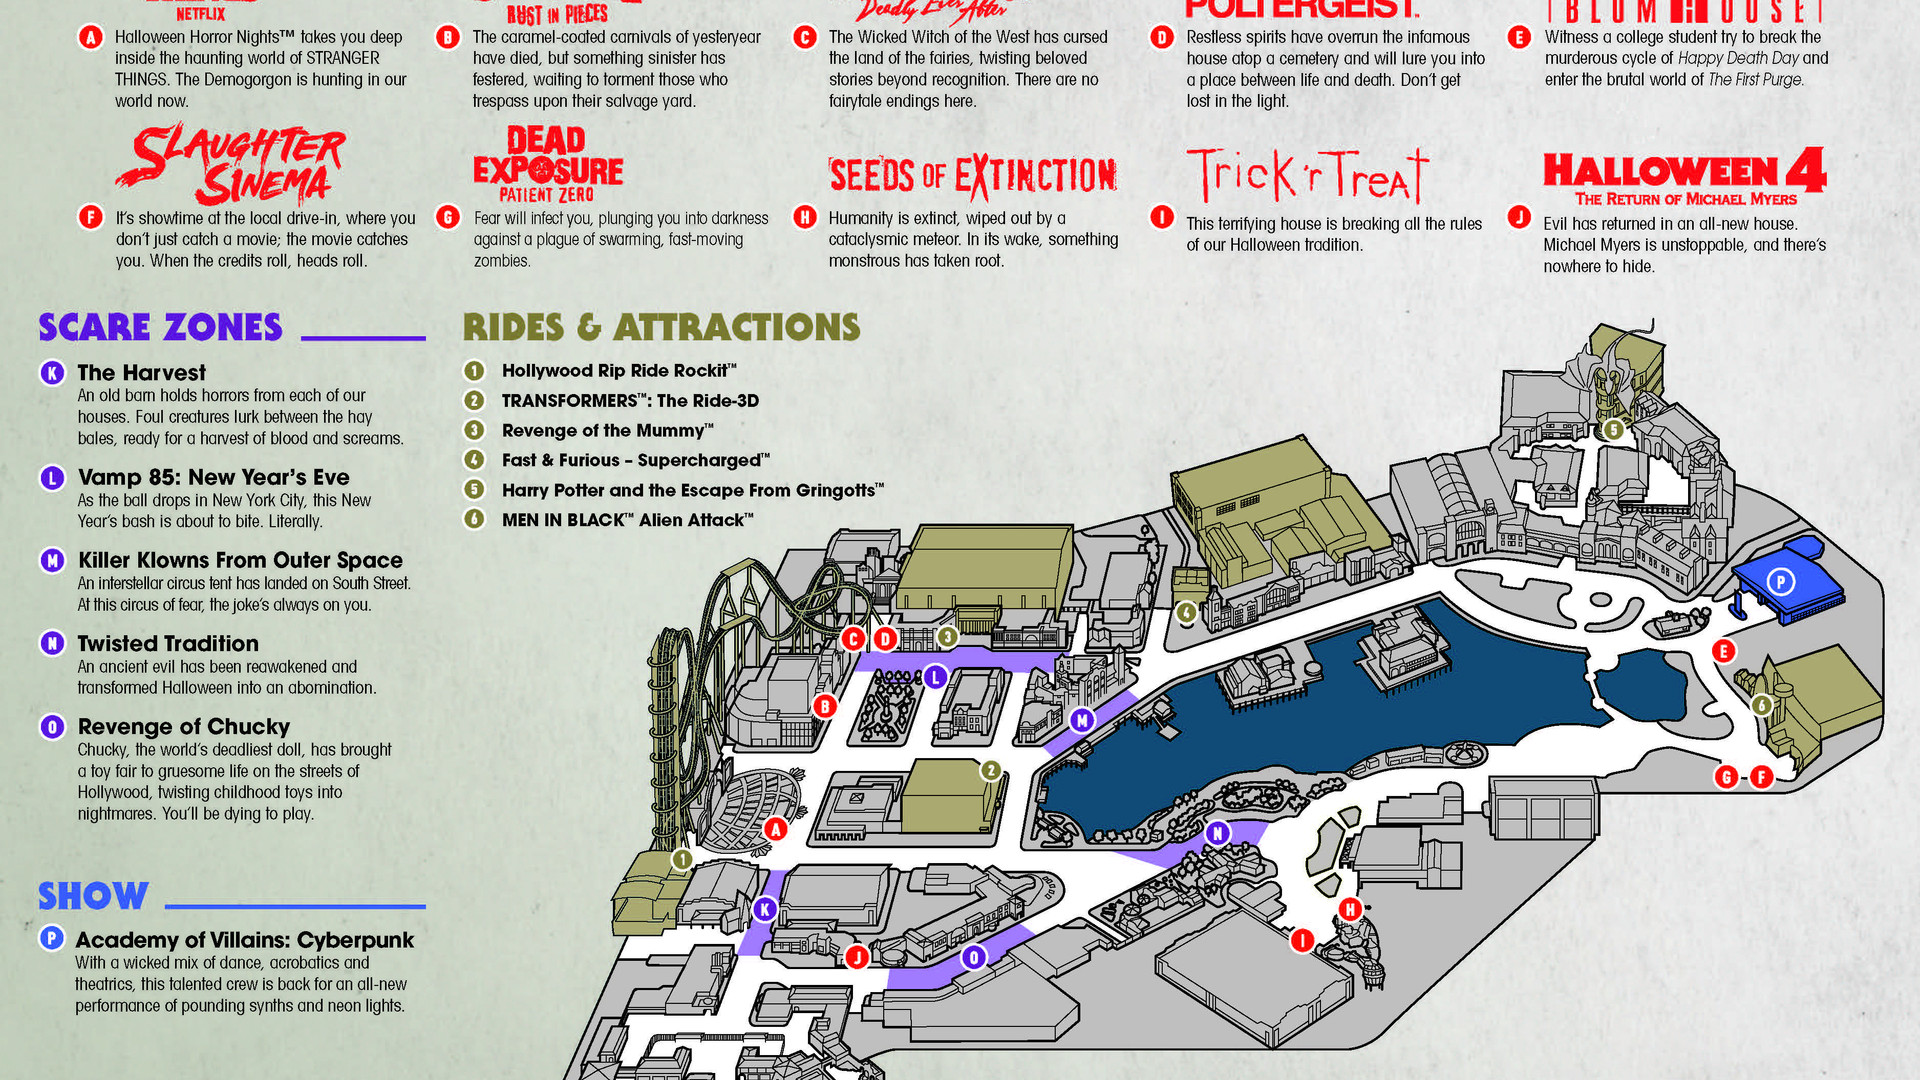 event-map-download.jpg